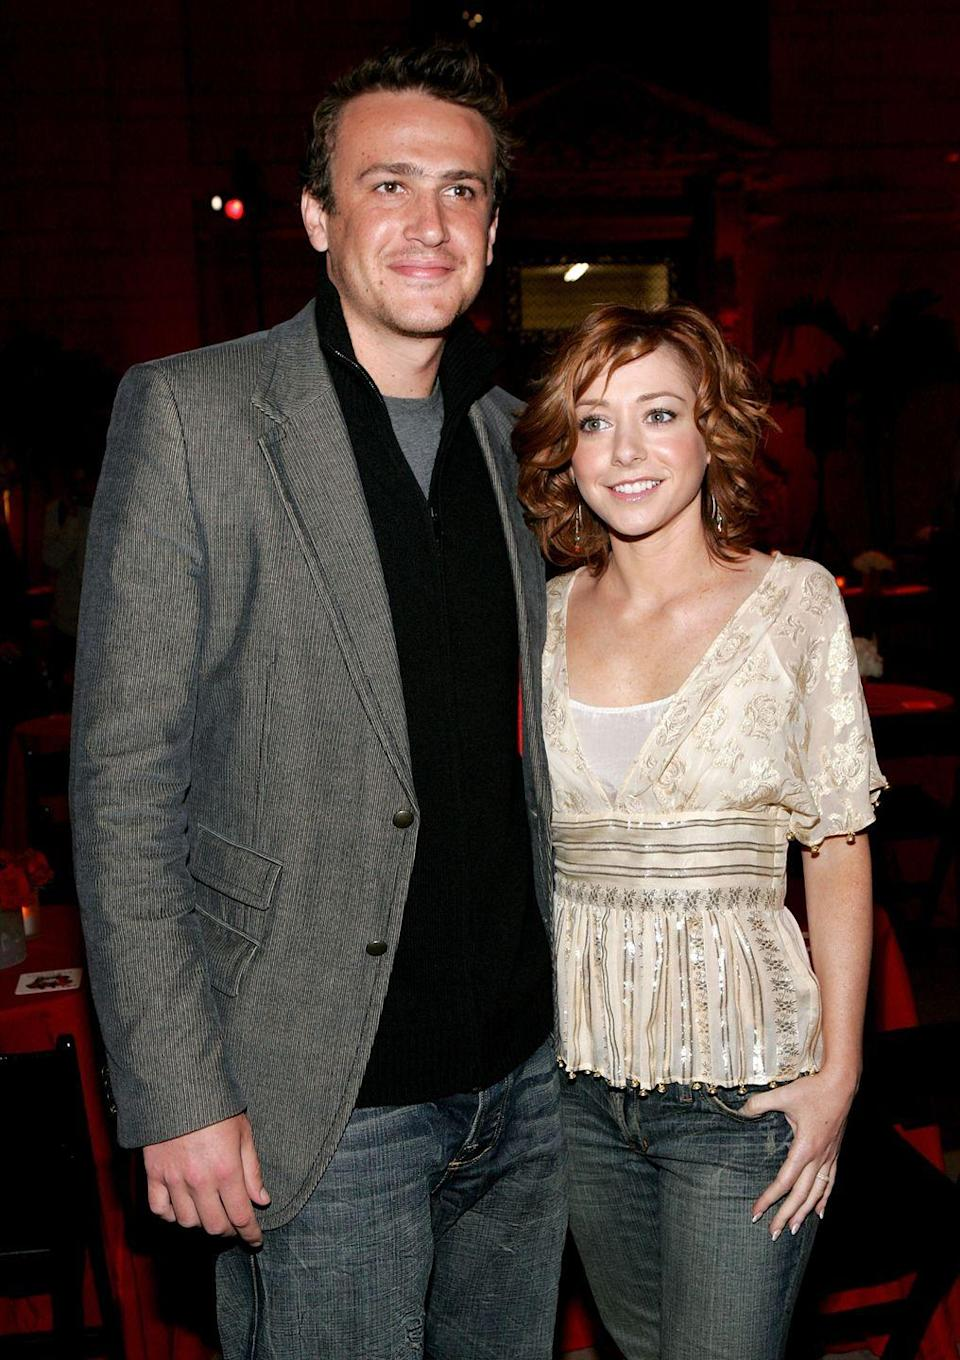 "<p>Kisses weren't always sweet for <em>How I Met Your Mother</em>'s legendary lovebirds Marshall and Lily. Alyson Hannigan <a href=""https://www.digitalspy.com/tv/ustv/a130726/hannigan-i-hate-kissing-tv-hubby/"" rel=""nofollow noopener"" target=""_blank"" data-ylk=""slk:originally refused to kiss"" class=""link rapid-noclick-resp"">originally refused to kiss </a>her on-screen husband, Jason Segel, because he smelled <em>and</em> tasted like smoke. Turned out to be a blessing for Segel (not to mention for Marshall and Lily fans), as Hannigan's attitude forced him to quit the habit.</p>"